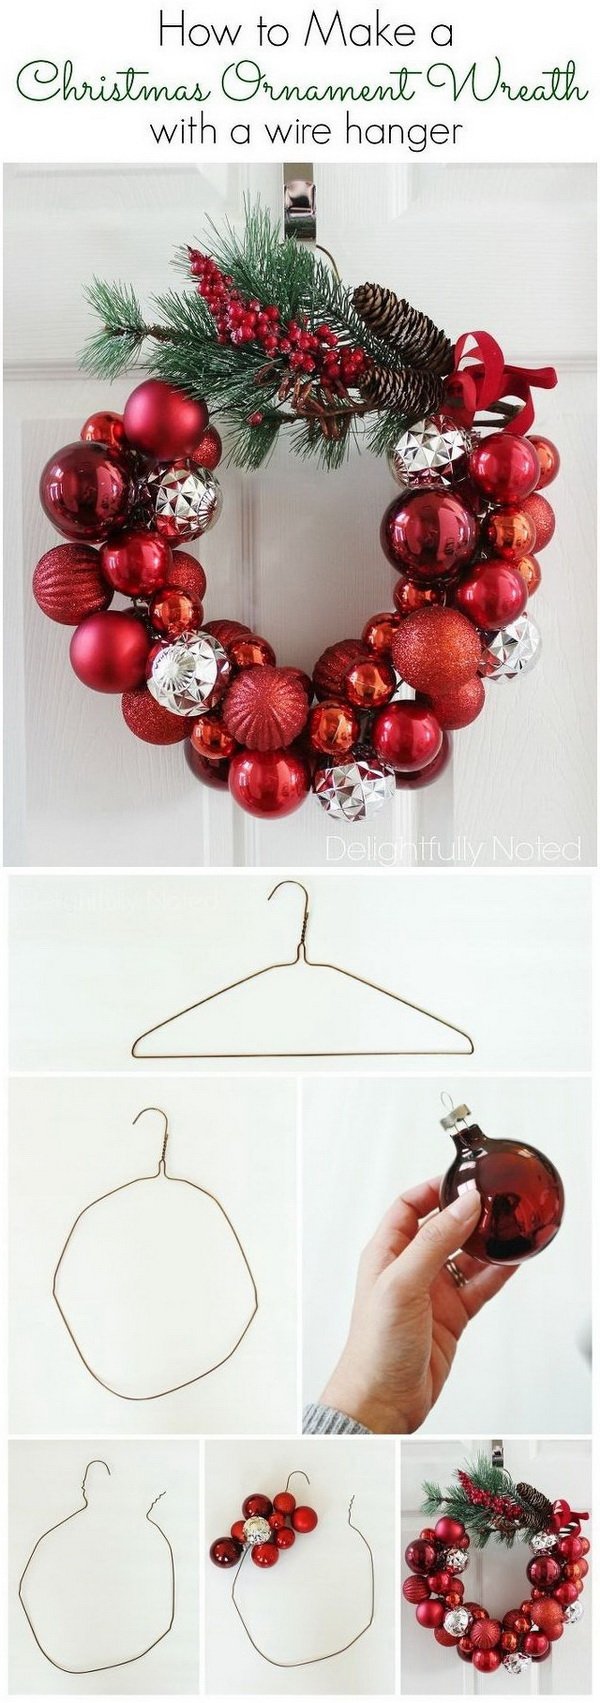 diy christmas ornament wreath - Homemade Christmas Decorations Ideas